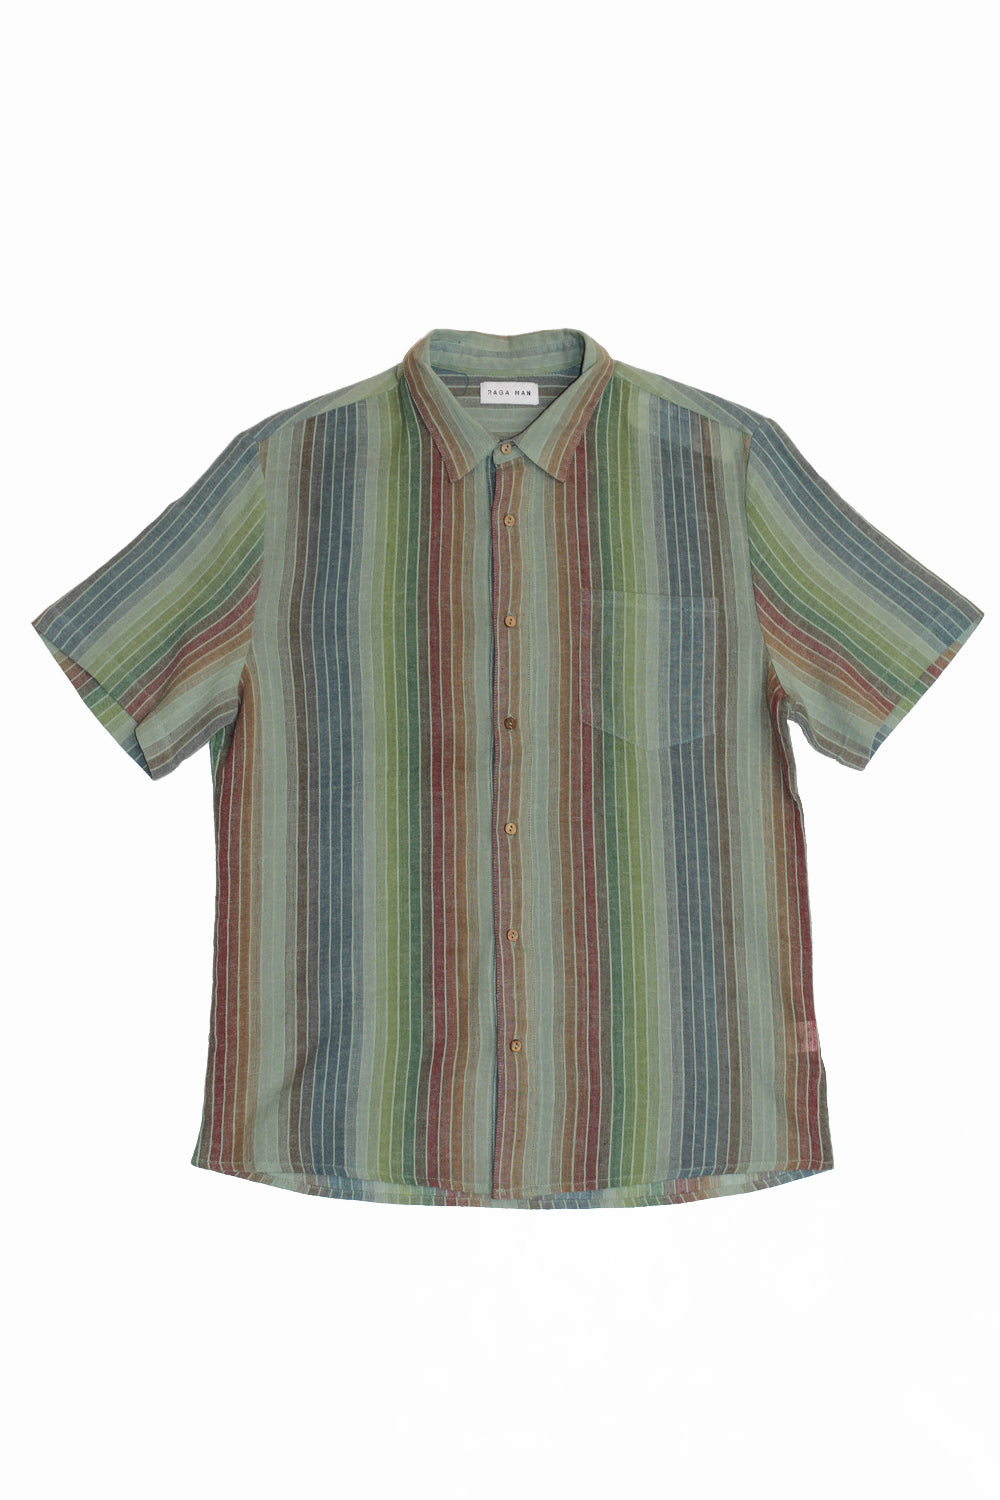 RAGA MAN LINEN SHORT SLEEVE BUTTON UP